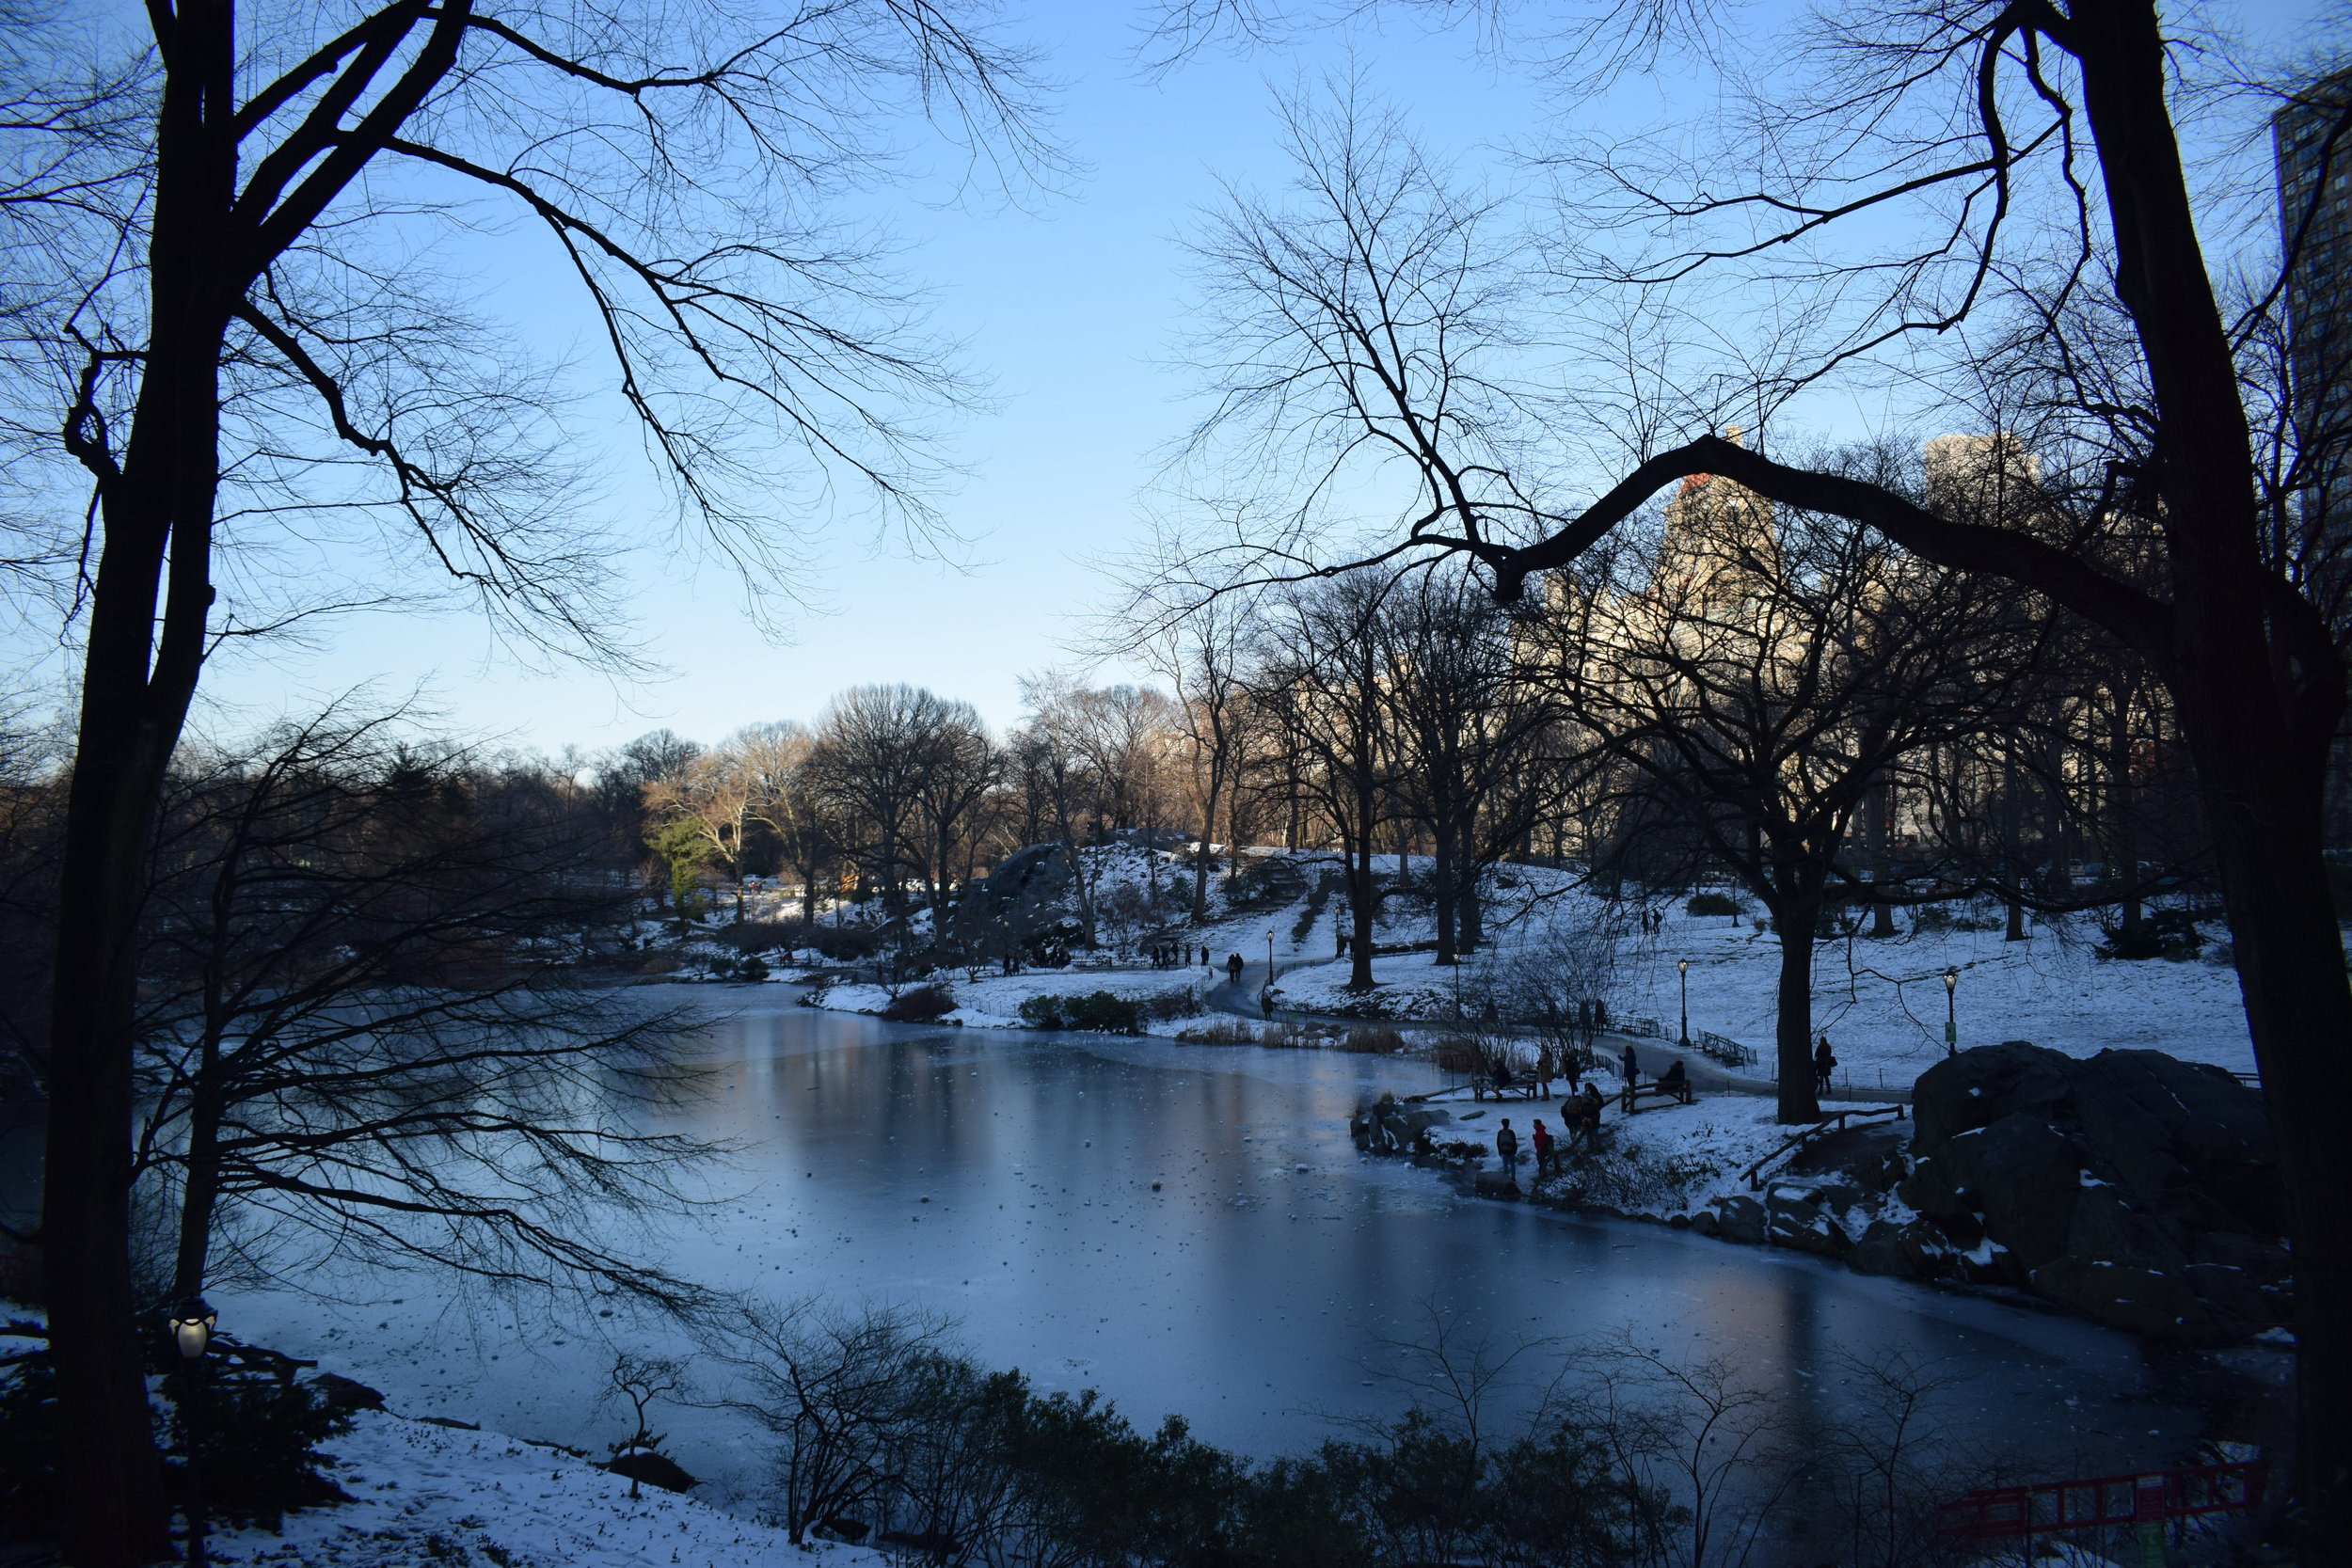 It was a cold day in Central Park, but it looked as stunning as ever.